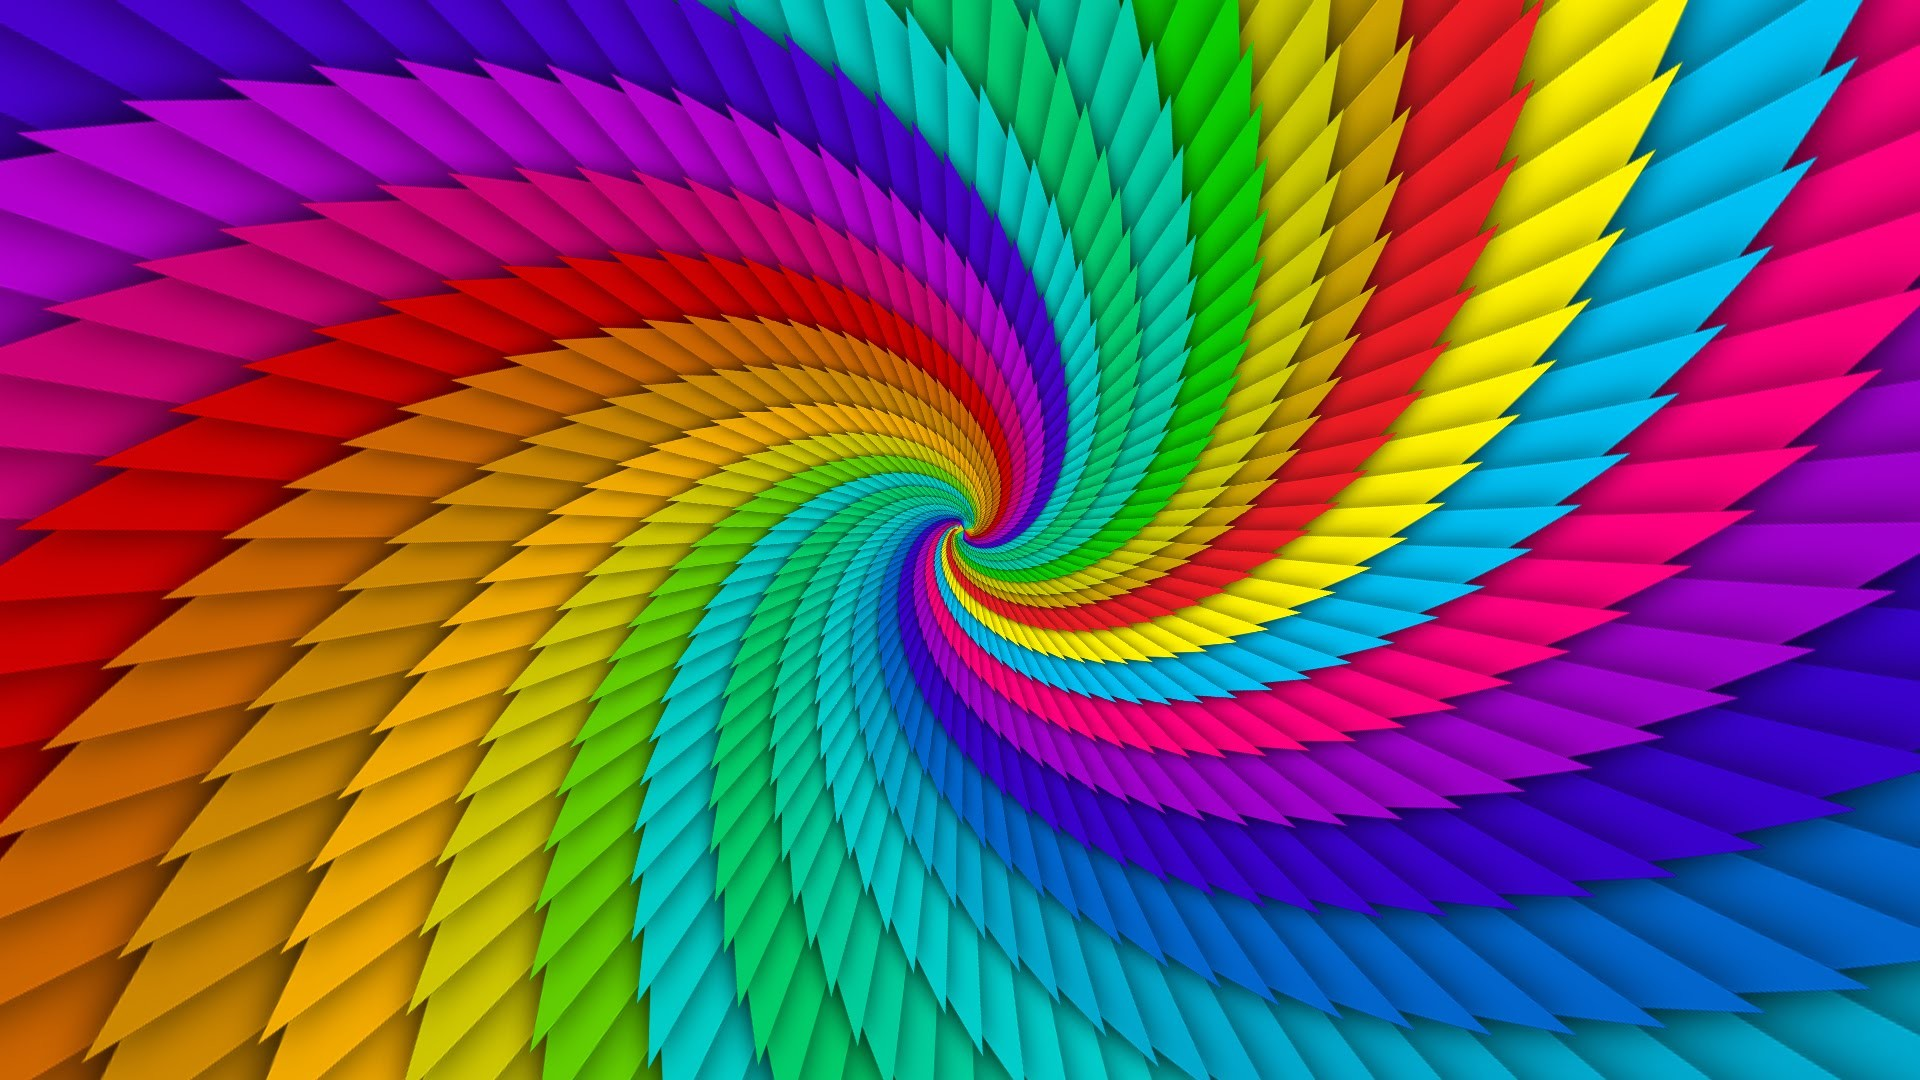 1920x1080 colorful wallpaper: Pictures Of Colorful Backgrounds (55+ Images